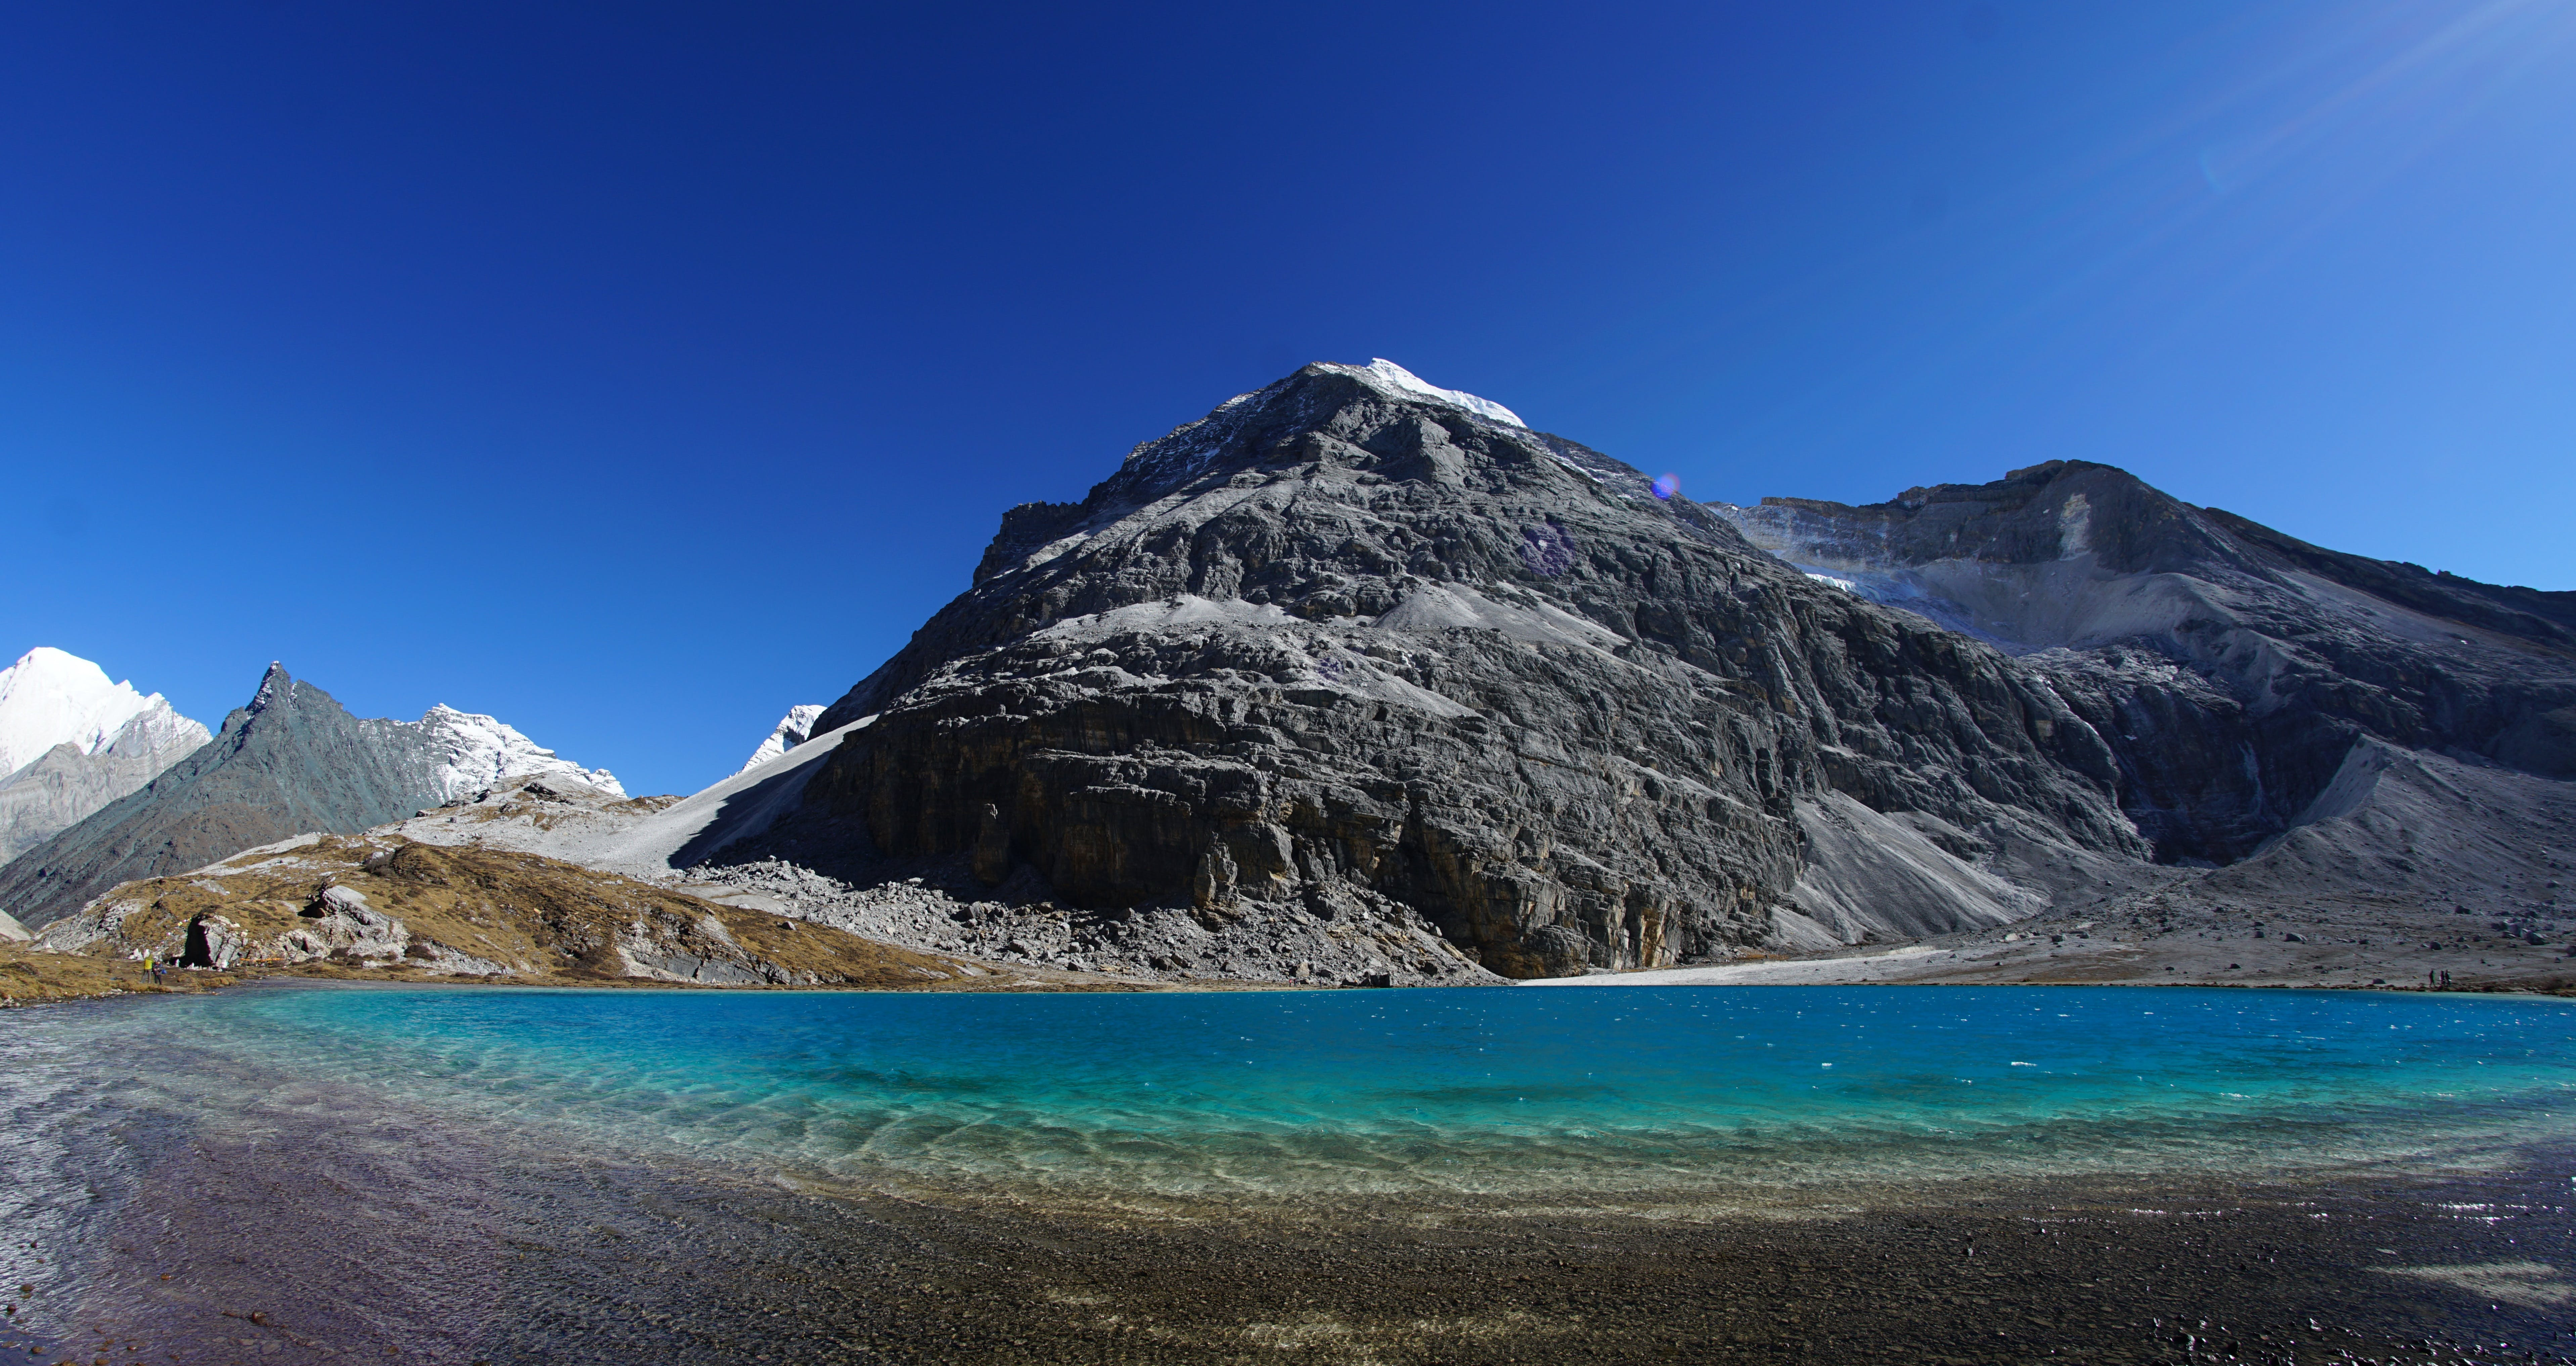 Mountain Range and Body of Water